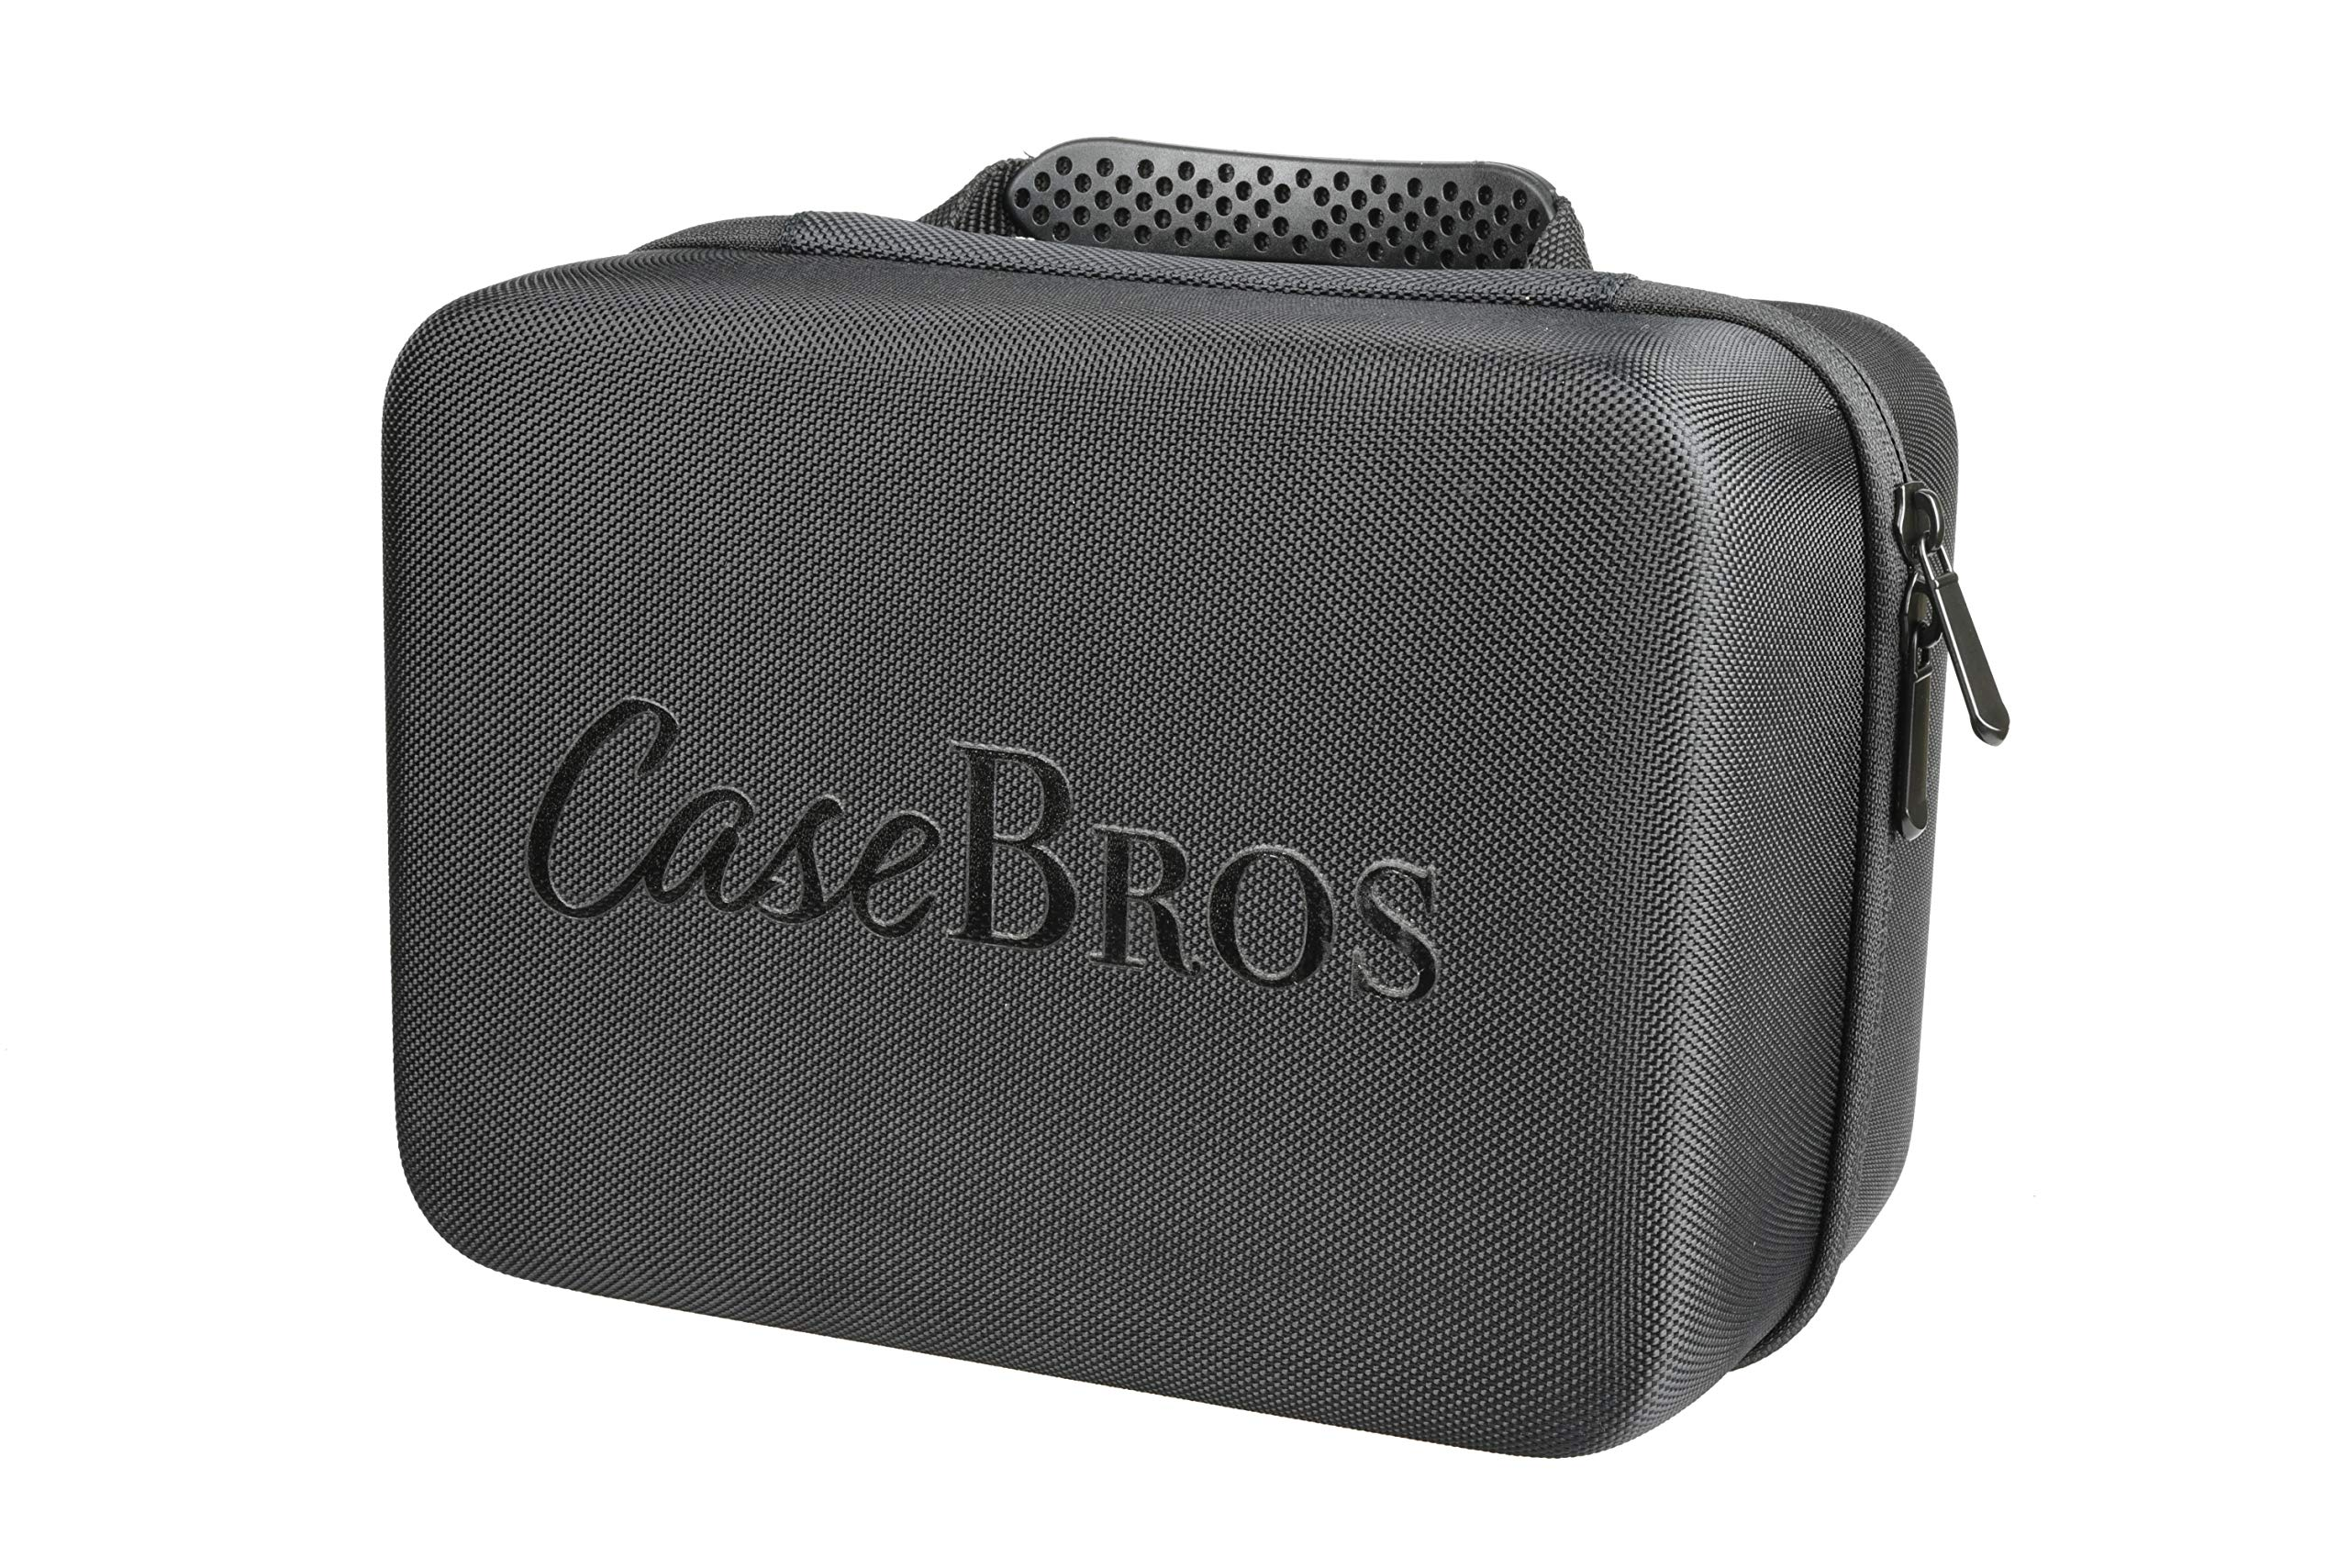 Case Bros Hardshell Travel Case for Apple HomePod | Protective Shell for Safe Storage and Transport | Custom Fit With Cutout To Prevent Cord Damage